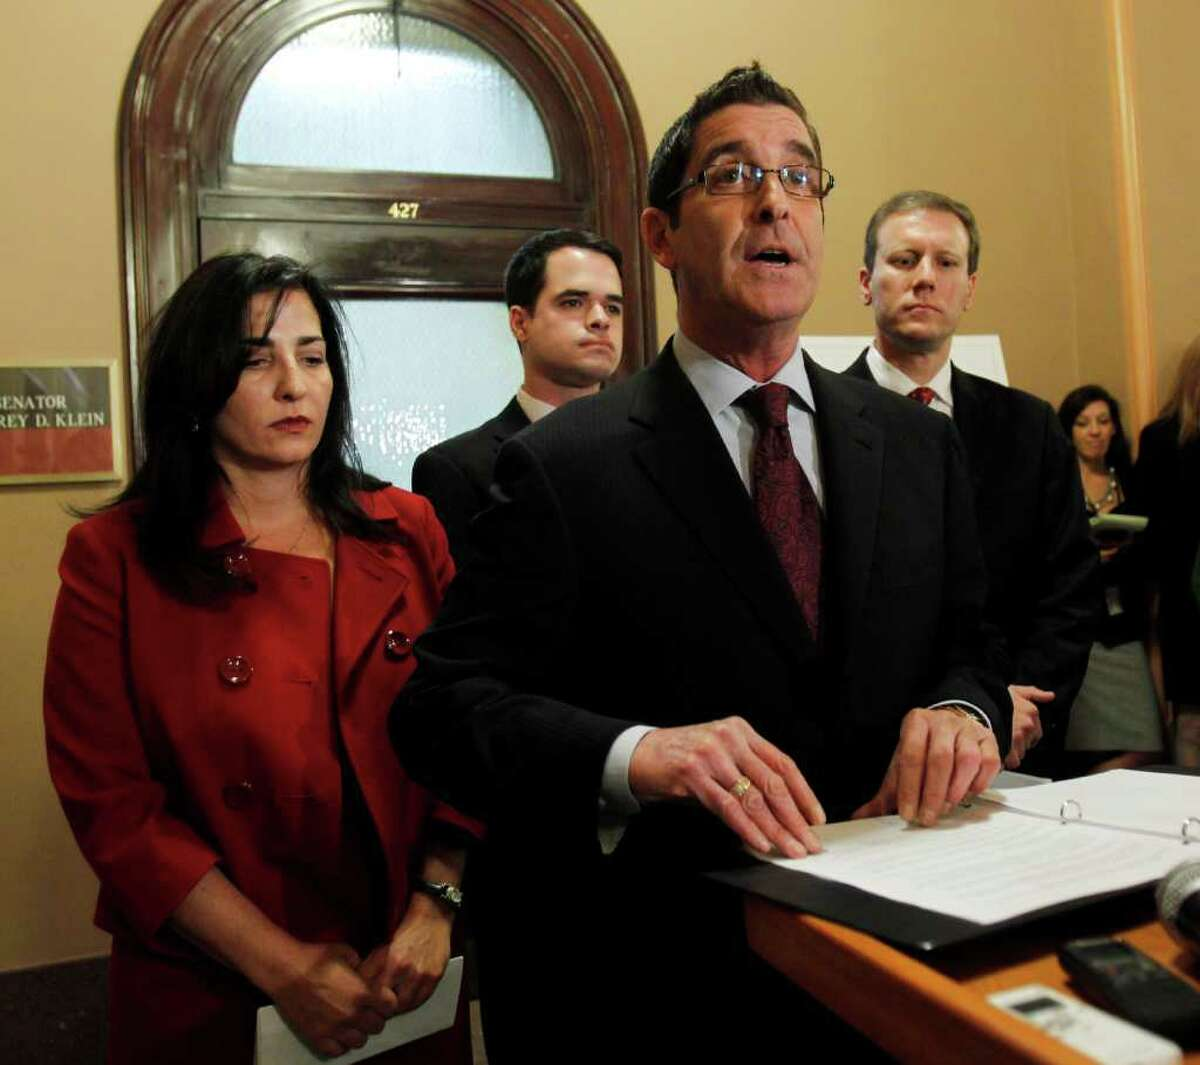 Sen. Jeffrey Klein, D-Bronx, speaks during a news conference at the Capitol where he announced that he and three other Democratic senators were forming an independent Democratic conference in Albany. Joining Klein, from left, are Sens. Diane Savino, David Carlucci and David Valesky. Mike Groll/Associated Press)